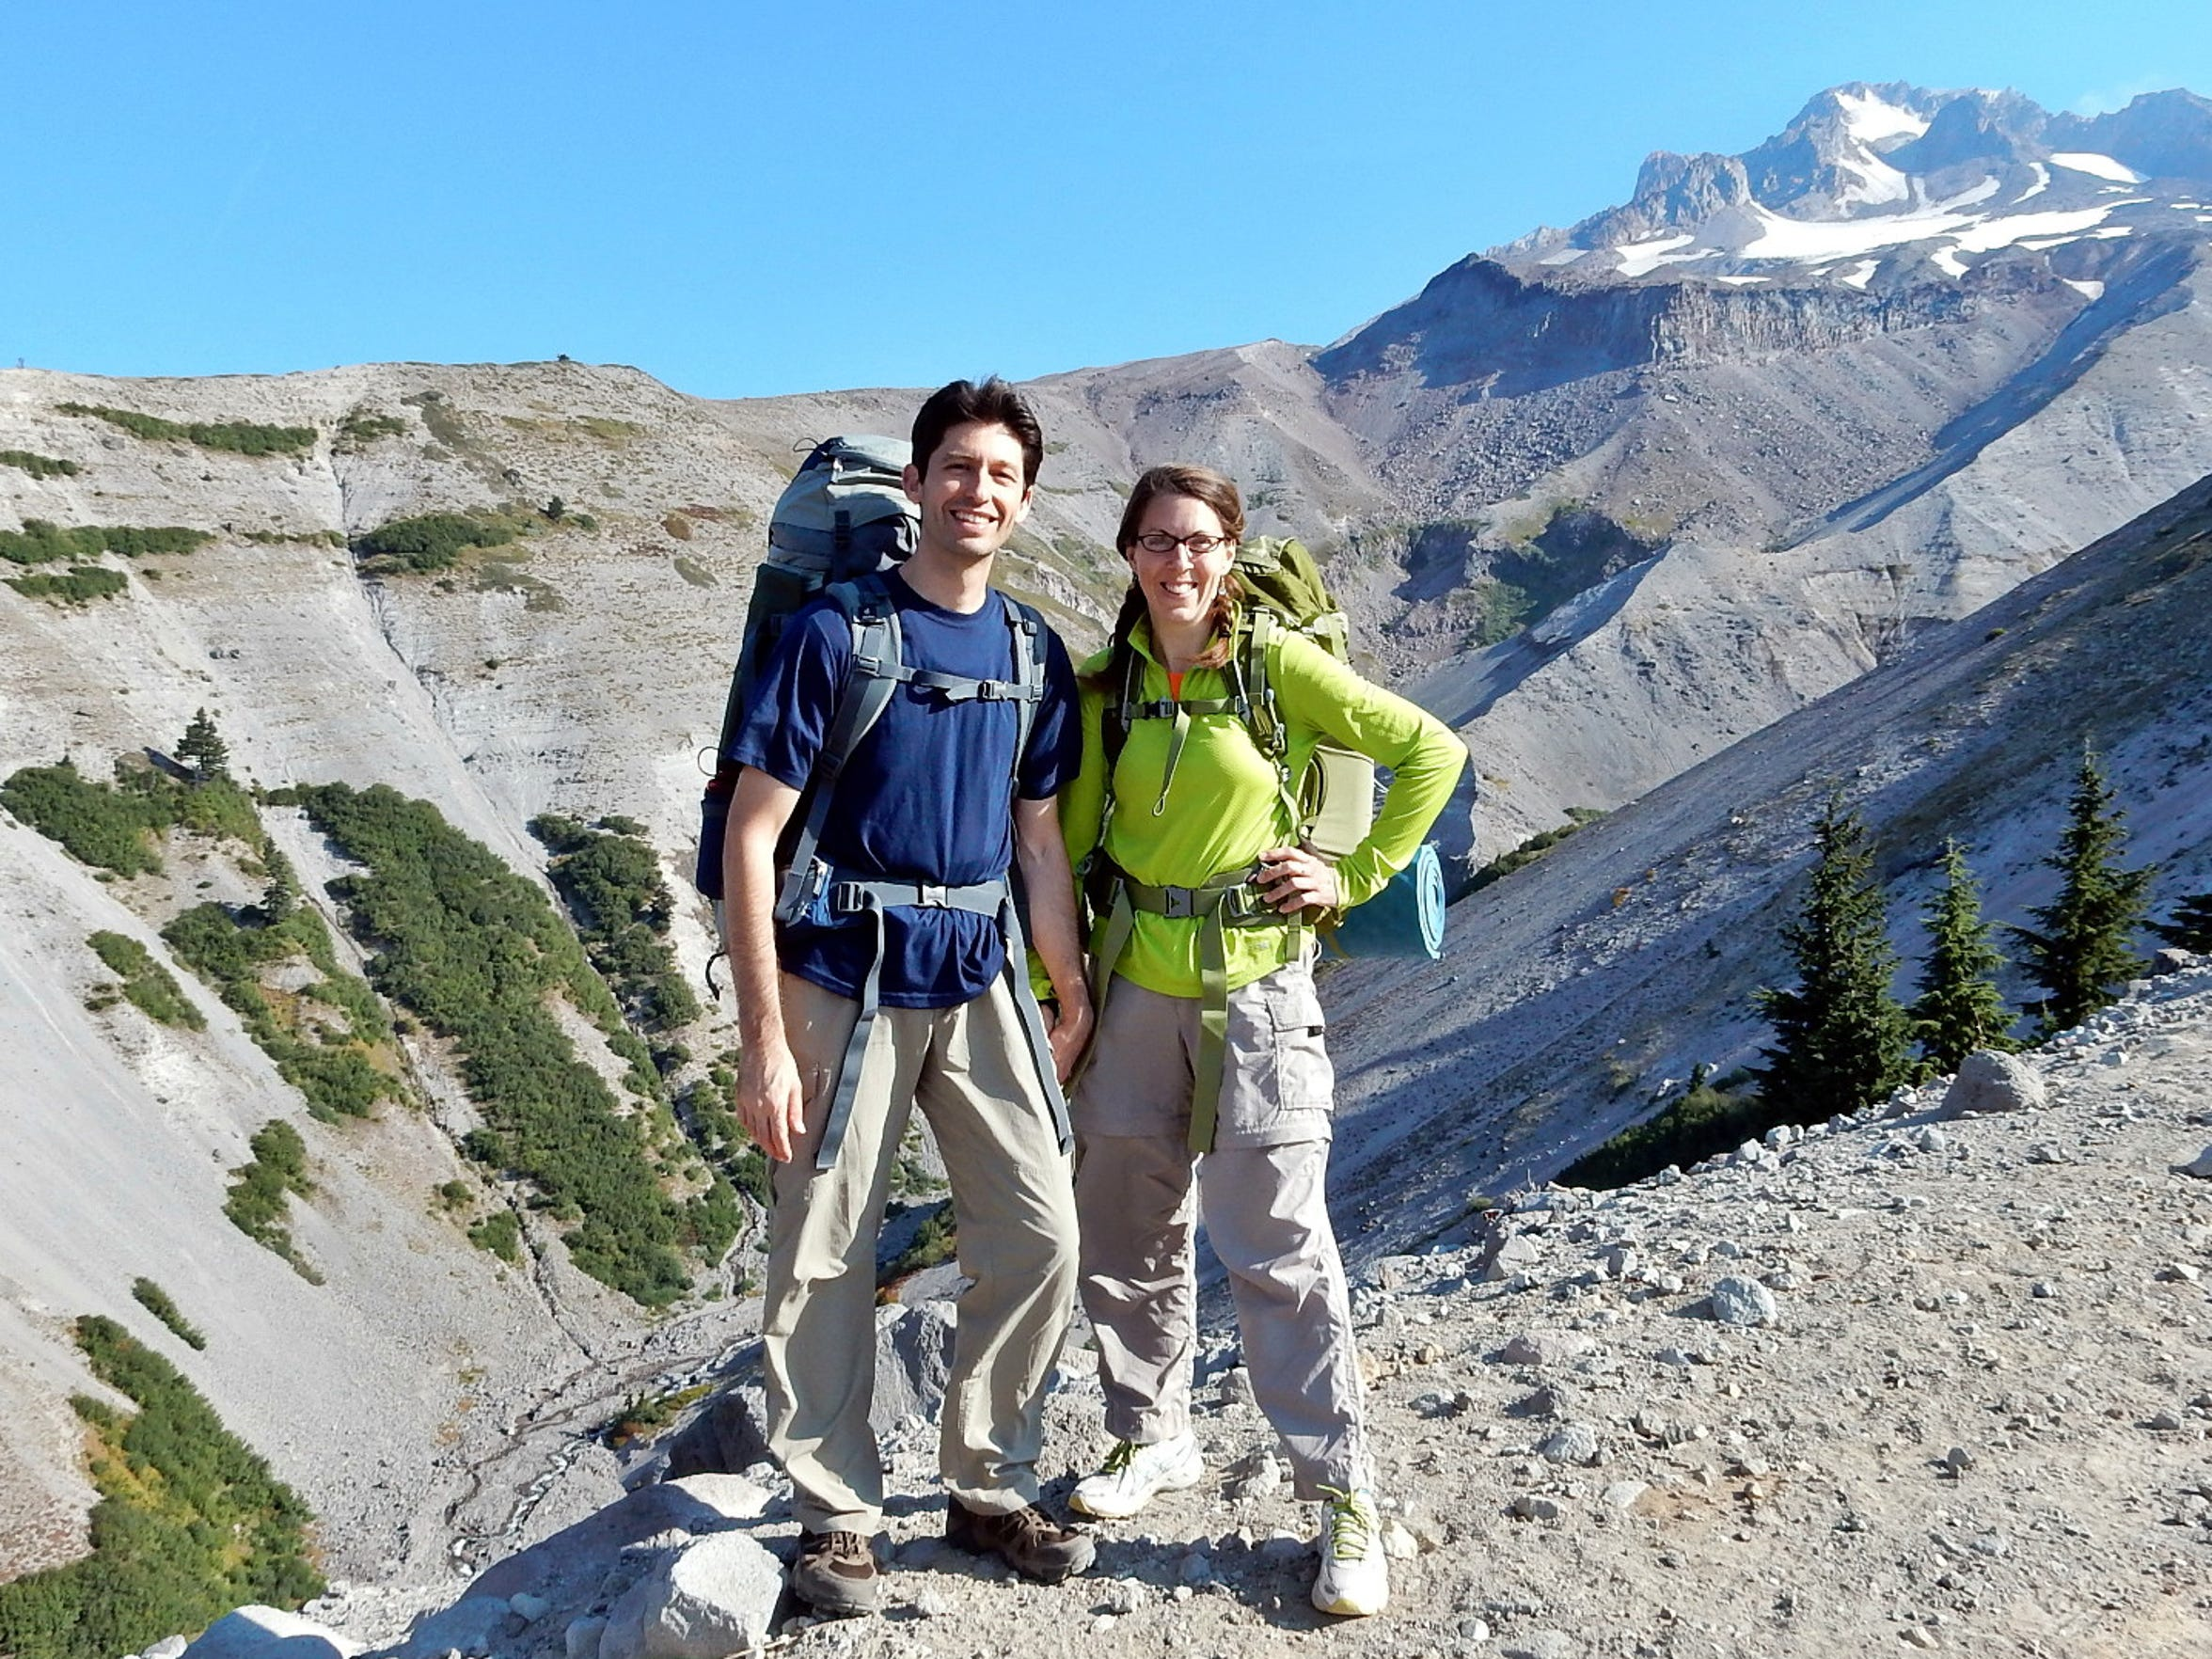 Josh and Heather Legler are the hosts of The First 40 Miles: Hiking and Backpacking Podcast.